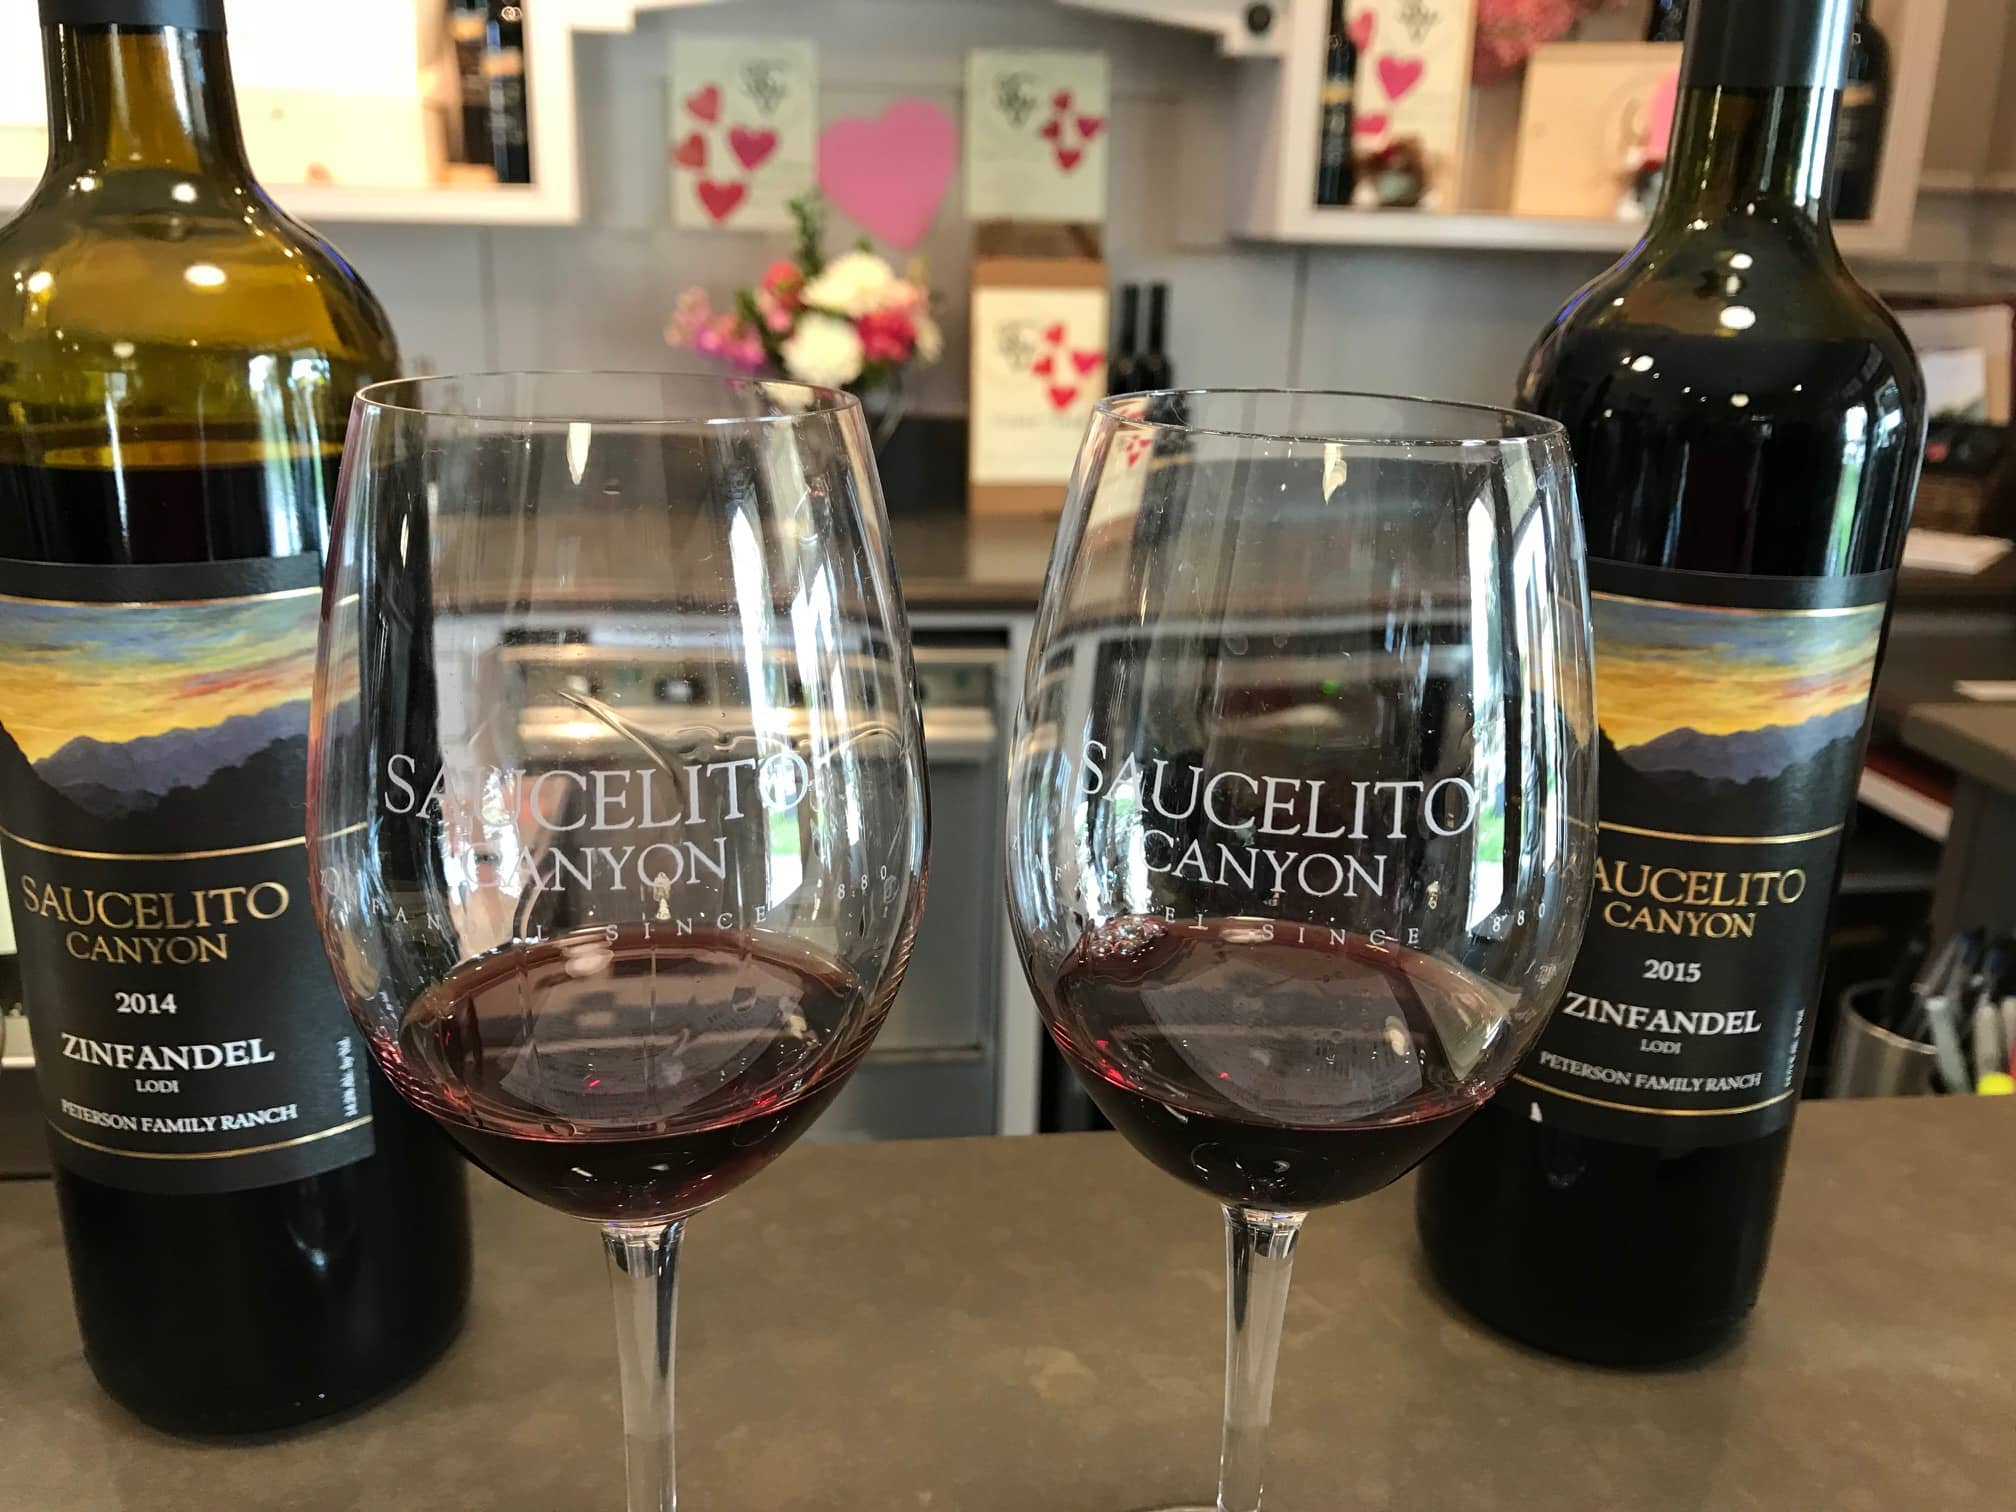 Saucelito Canyon wine glasses image